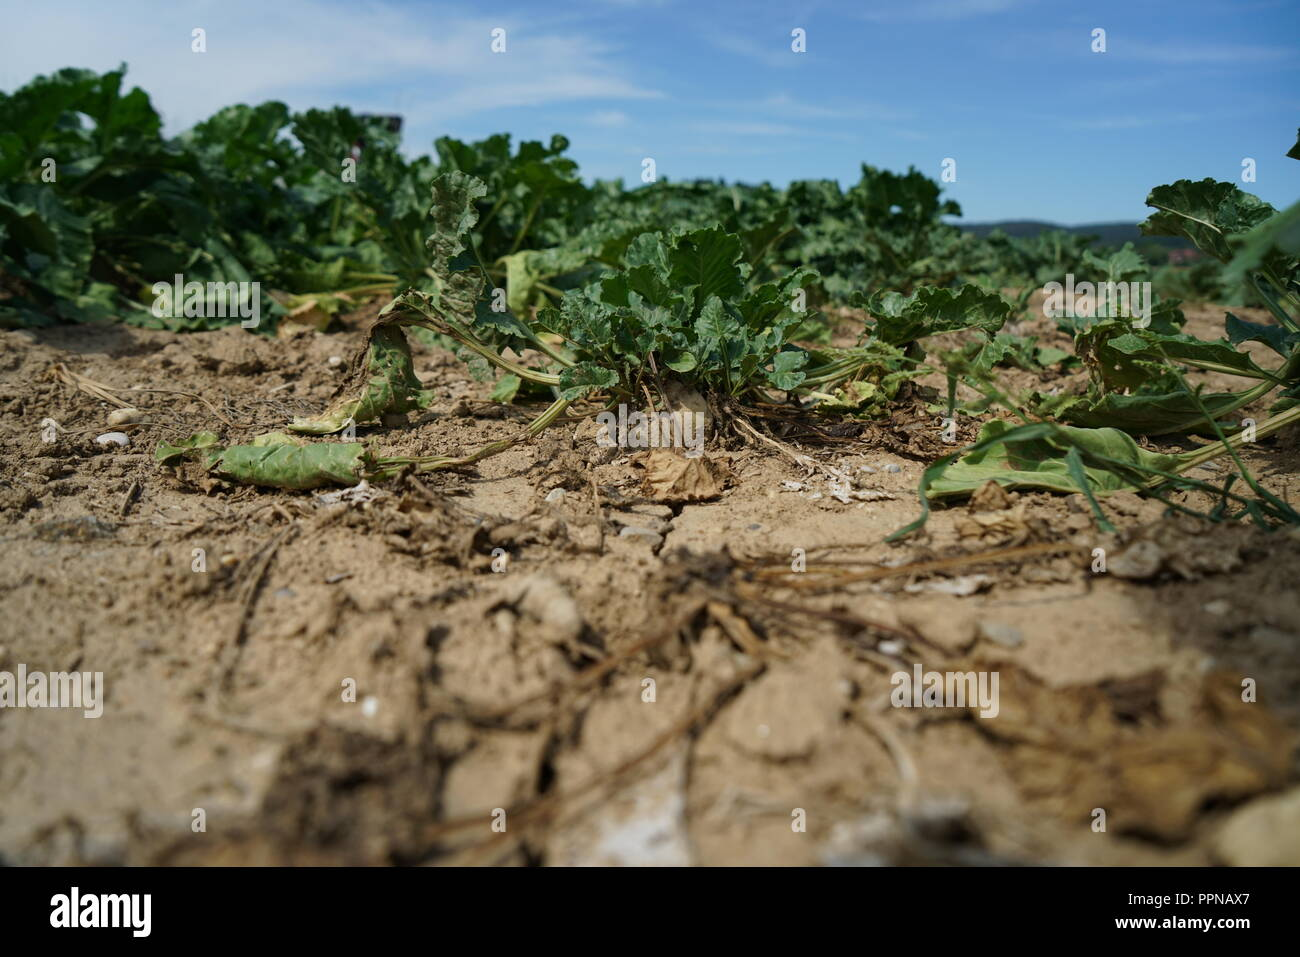 The extreme heat in Germany leads to enormous losses in the harvest of corn and corn in agriculture - Stock Image